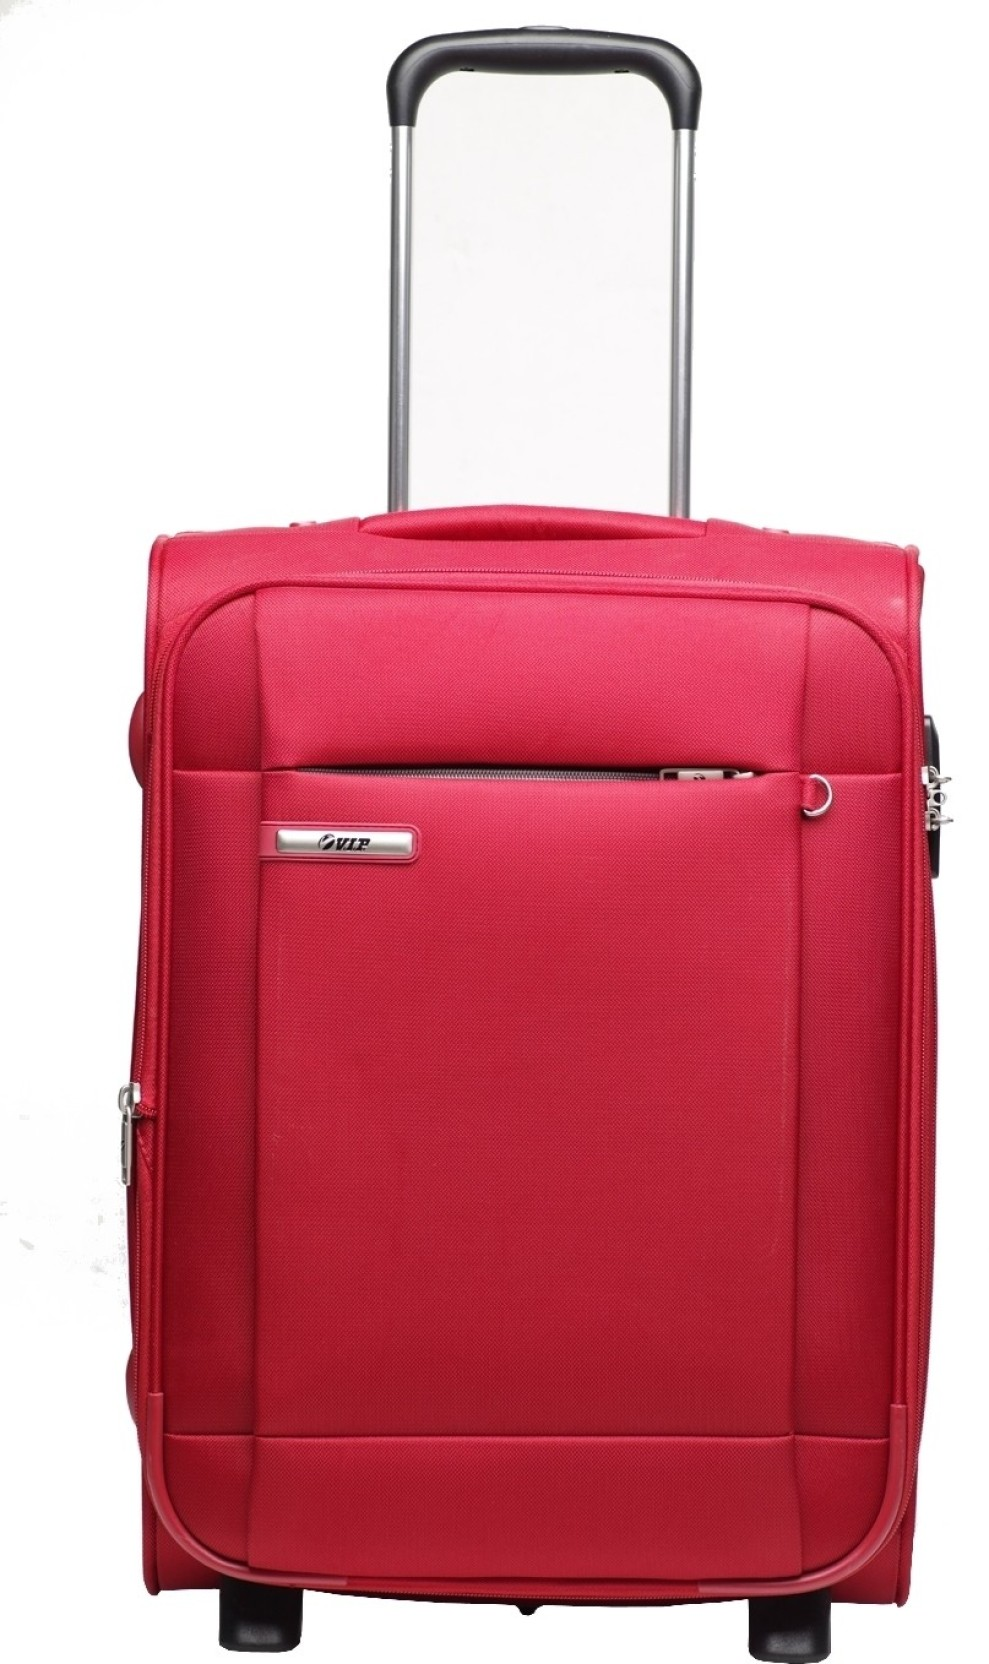 Vip Superlite Exp Expandable Cabin Luggage 22 Inches Red